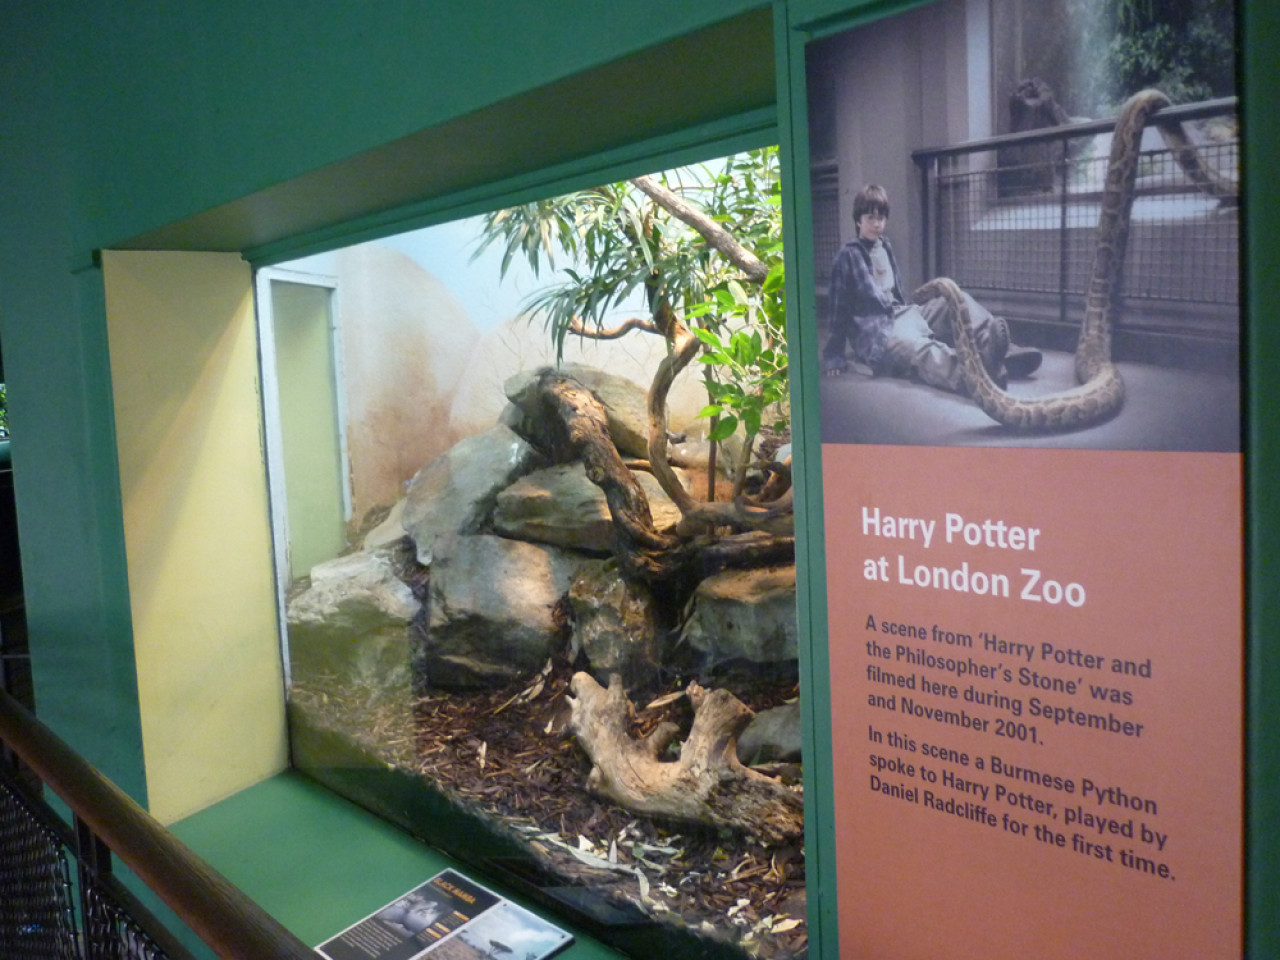 The filmed enclosure actually houses the zoo's resident Black Mamba.